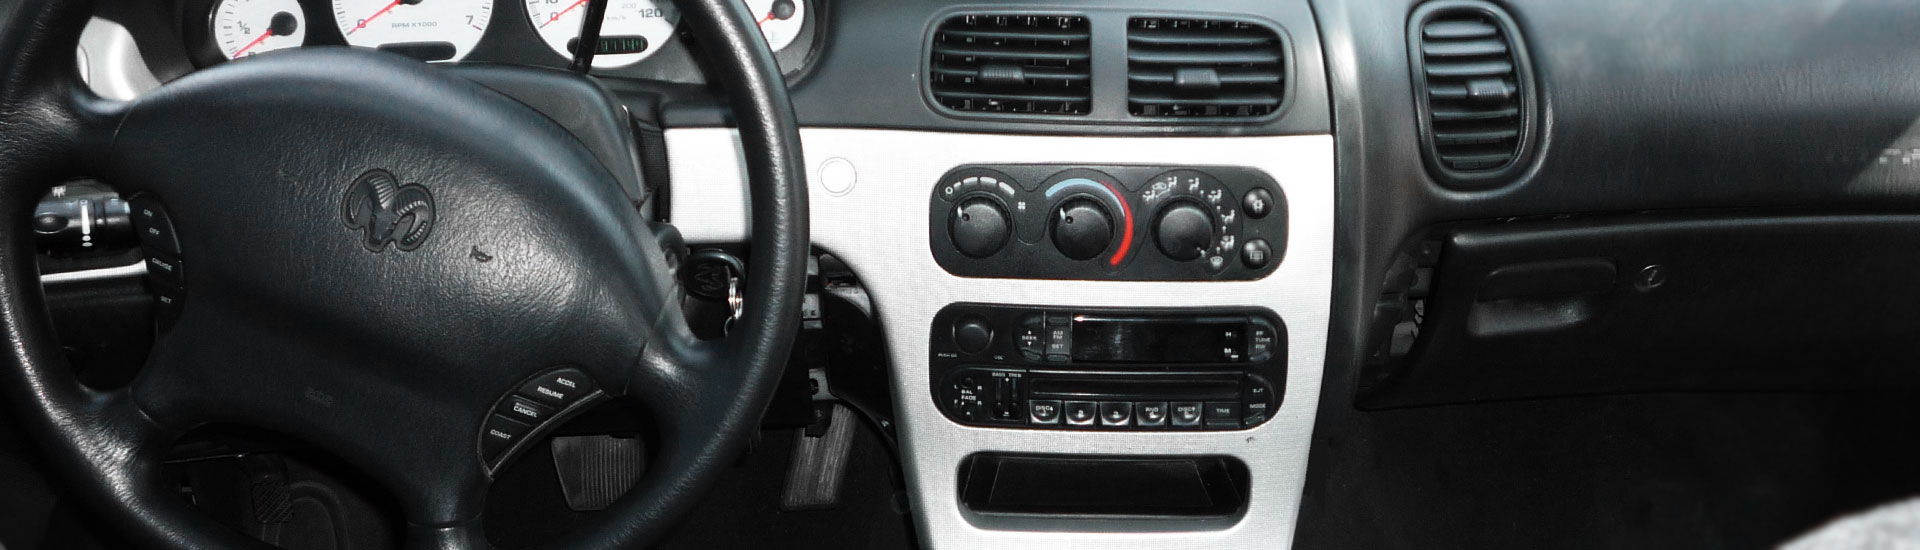 hight resolution of dodge intrepid custom dash kits